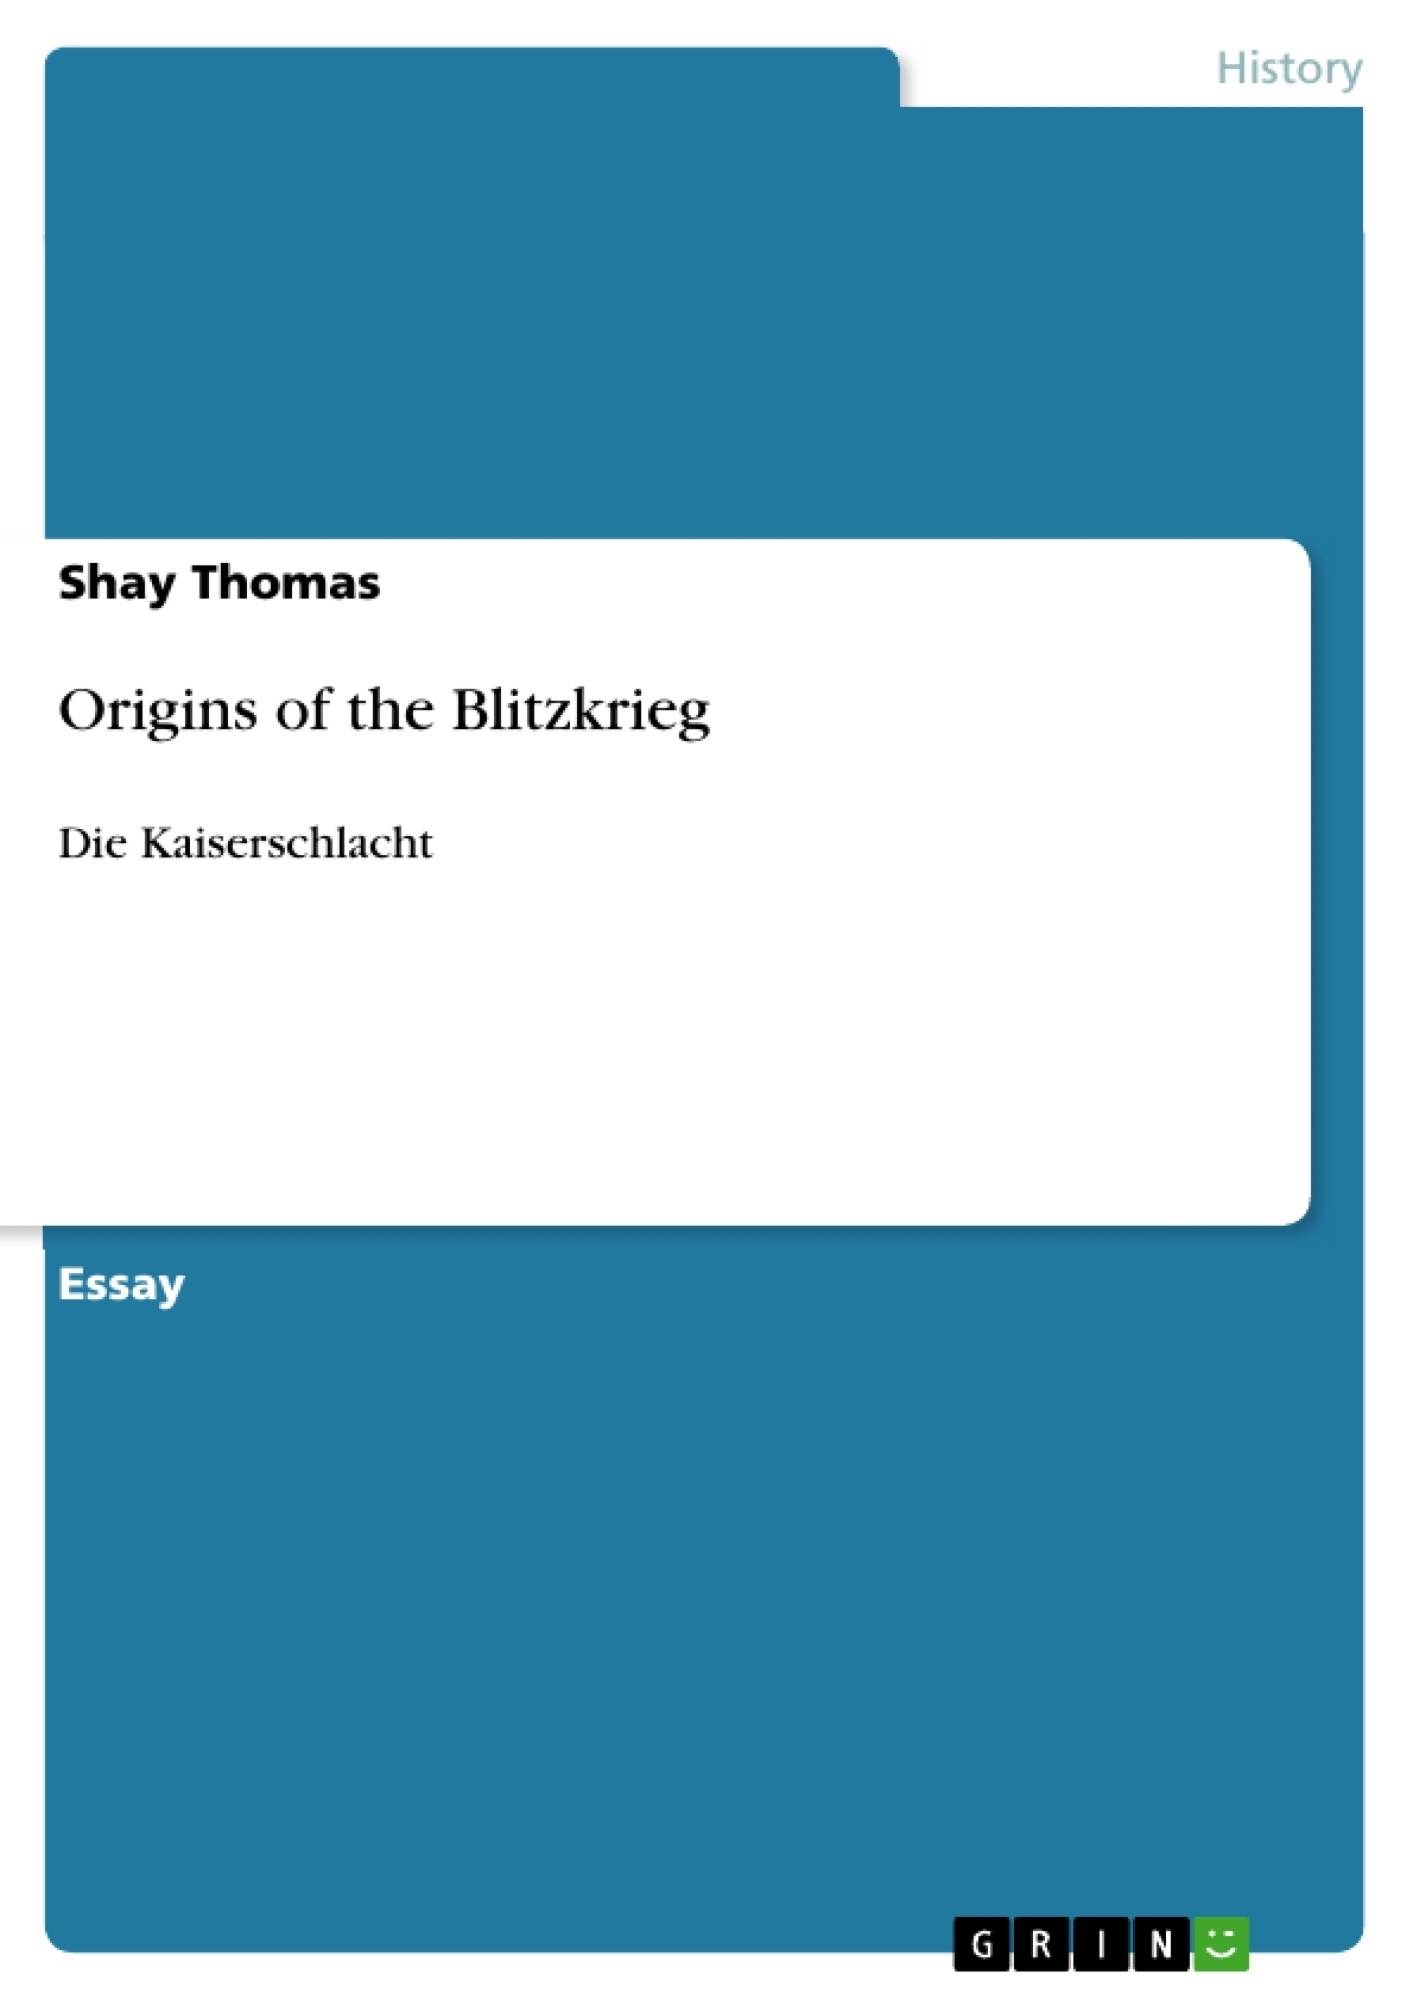 Title: Origins of the Blitzkrieg